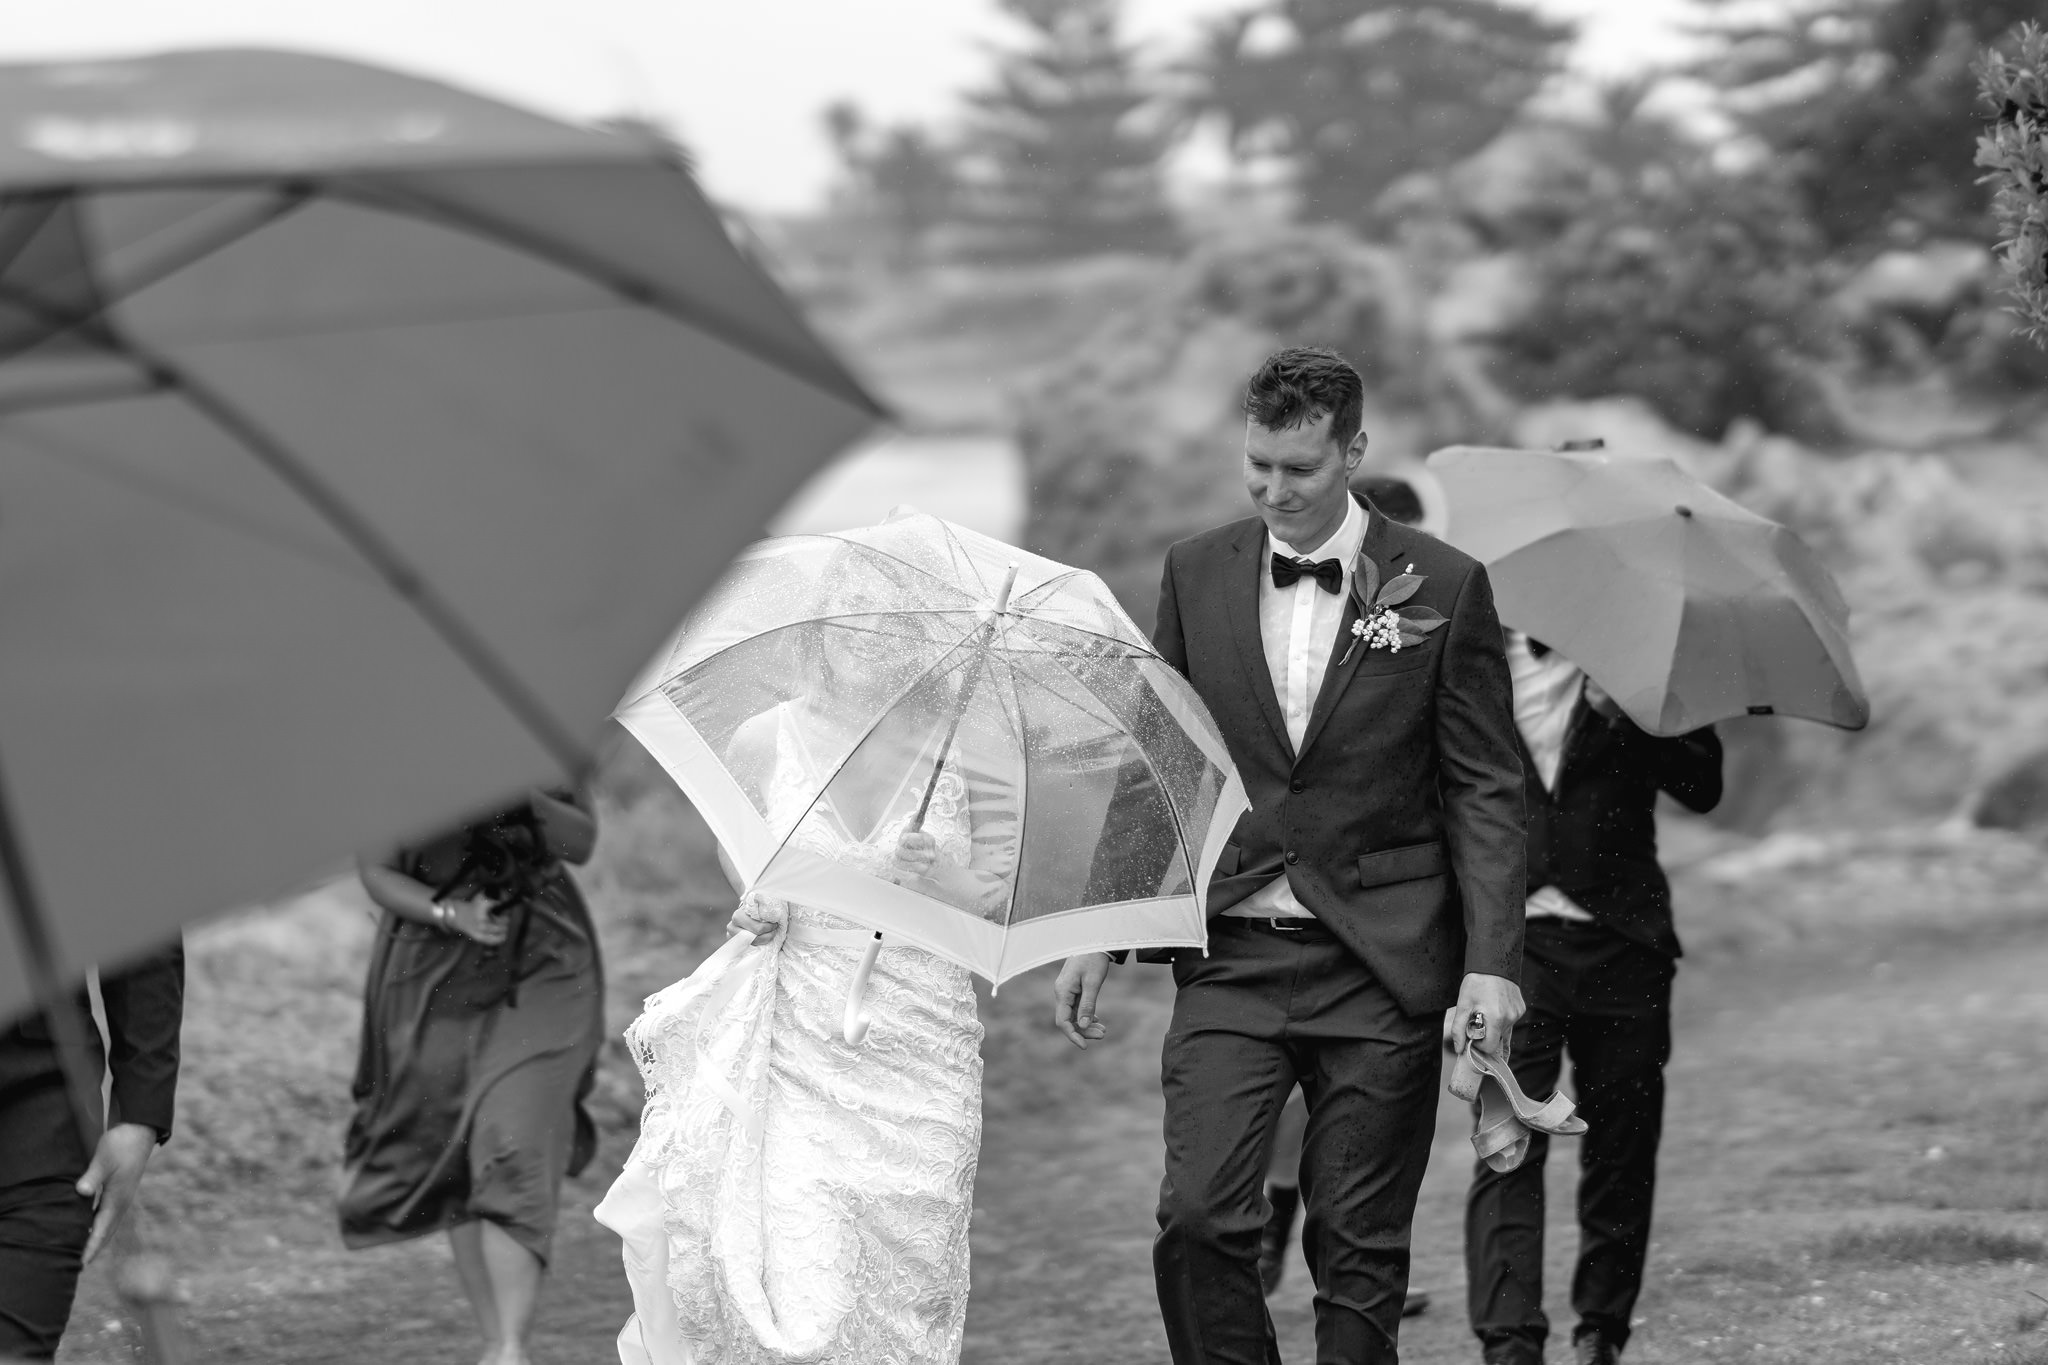 newfound-s-a-tauranga-new-zealand-wedding-photography-255A